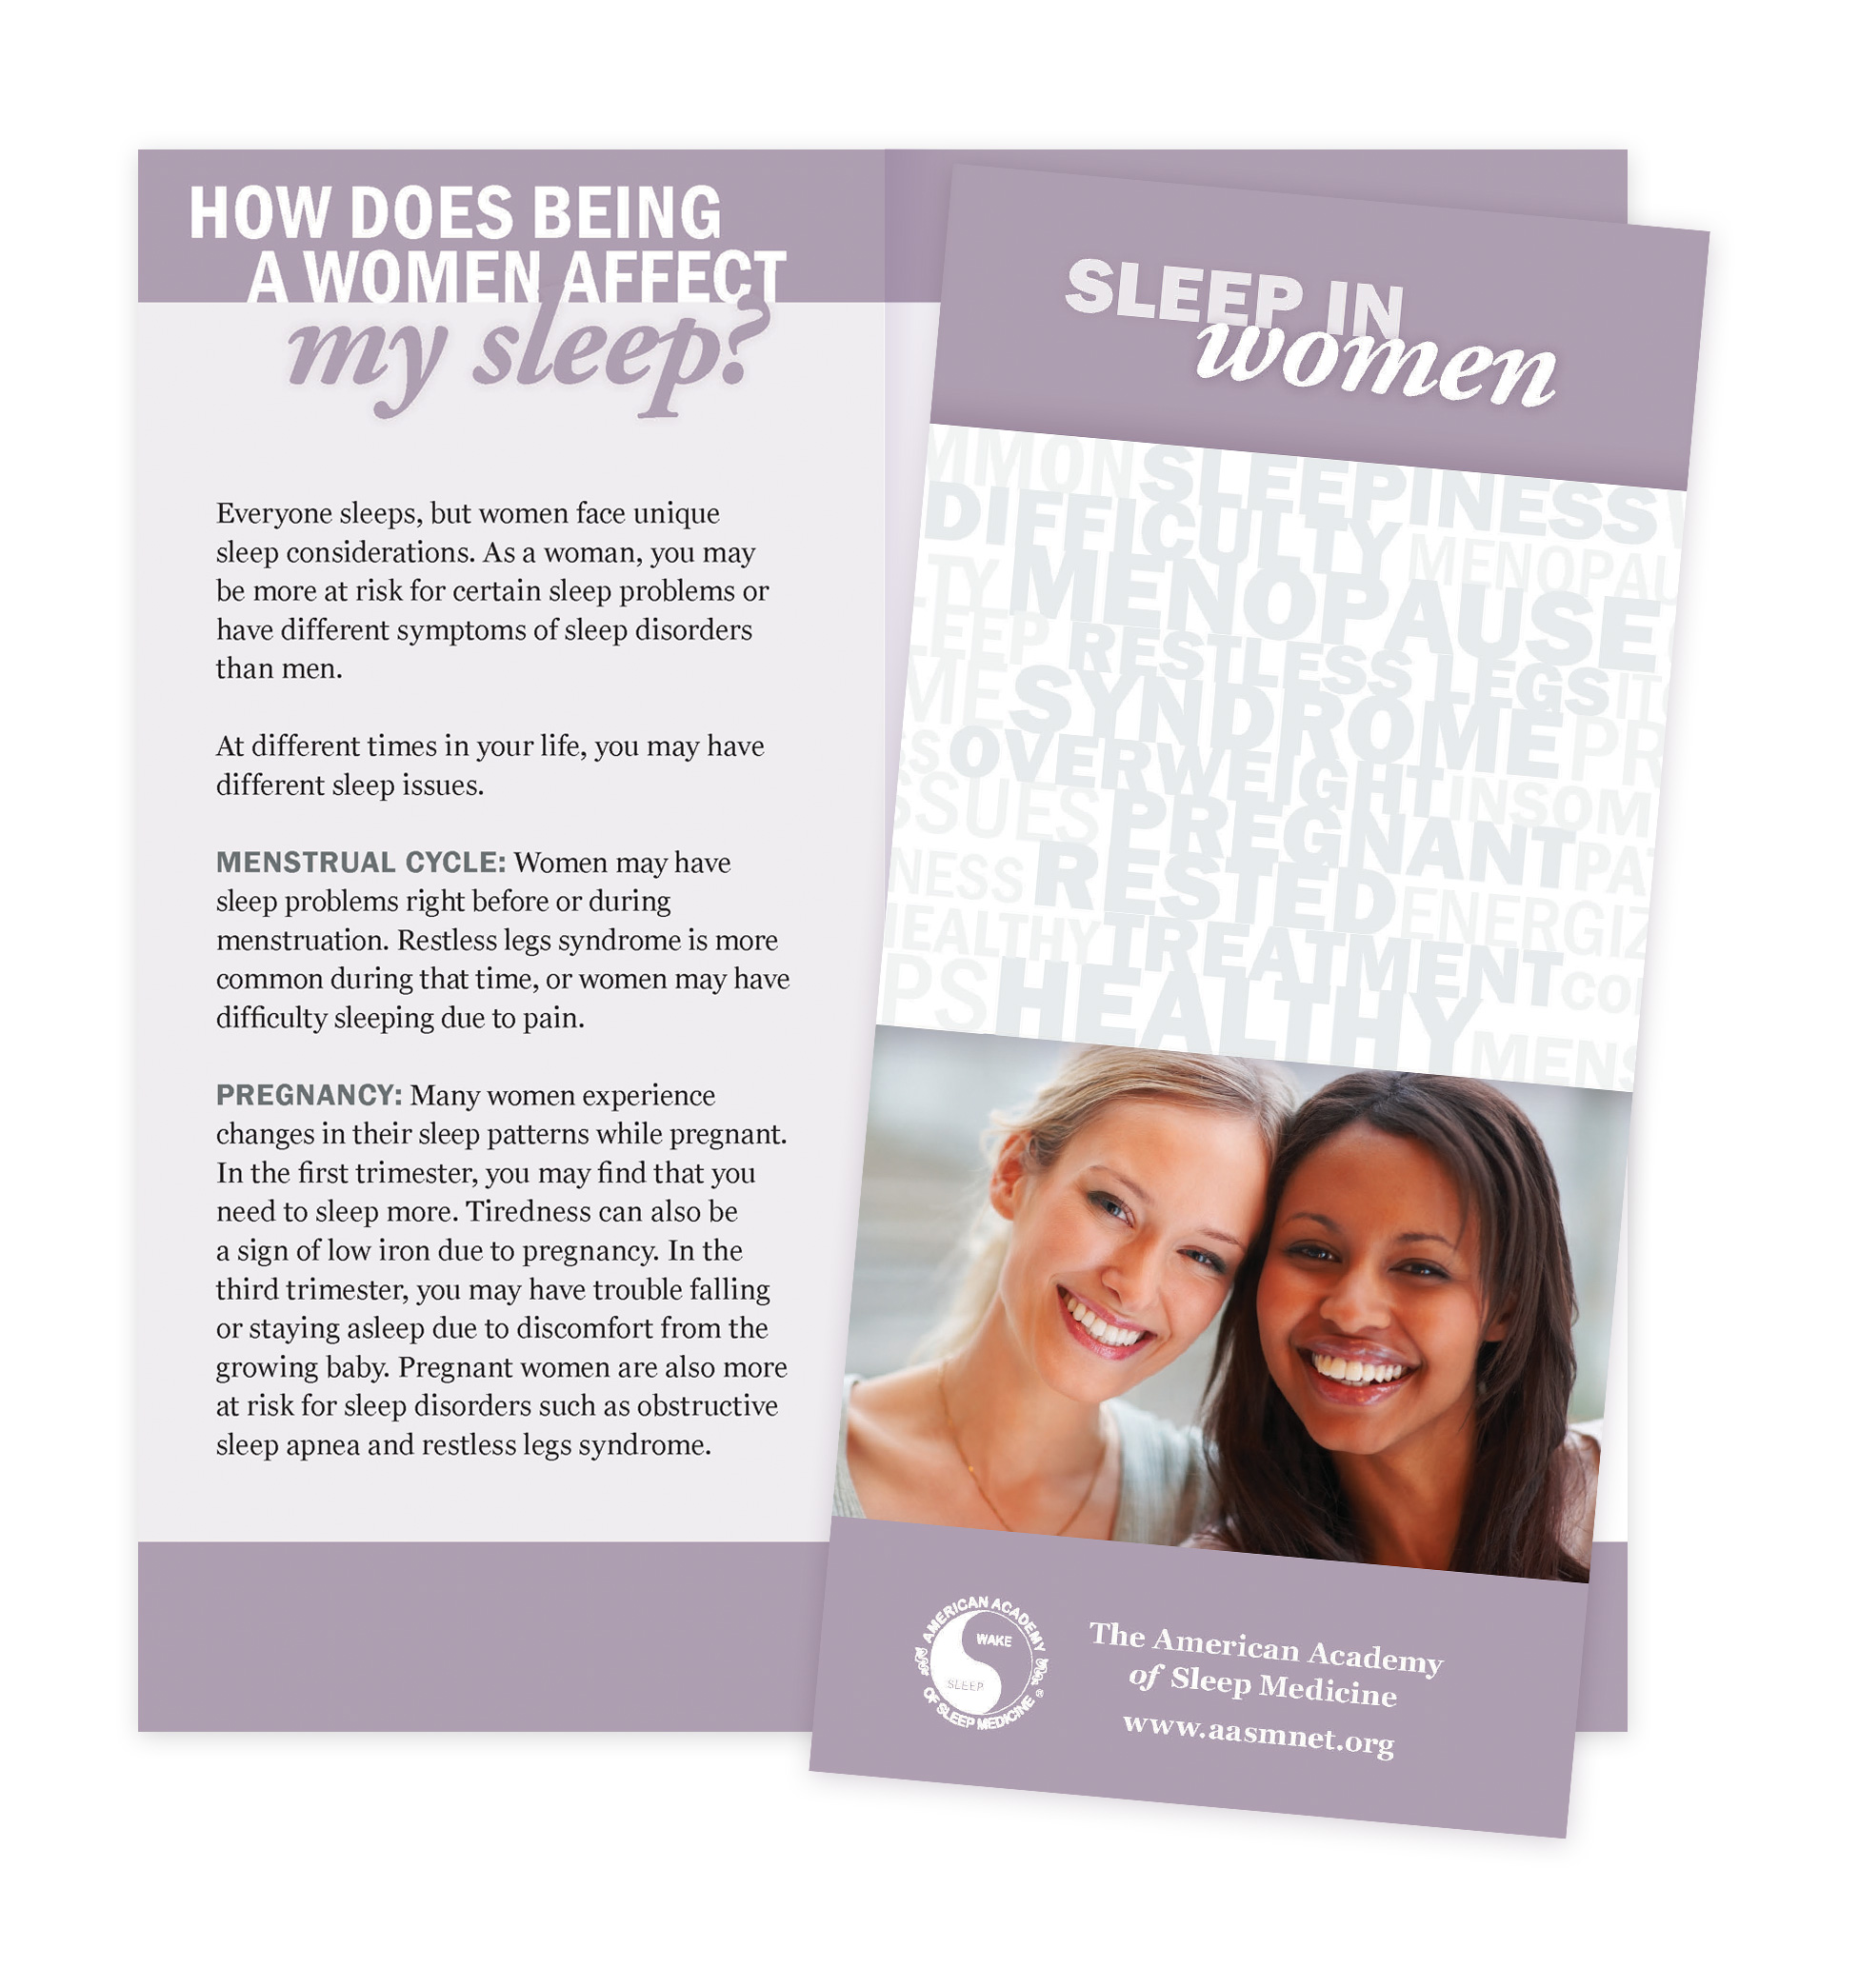 Sleep in Women Patient Education Brochures (50 brochures)